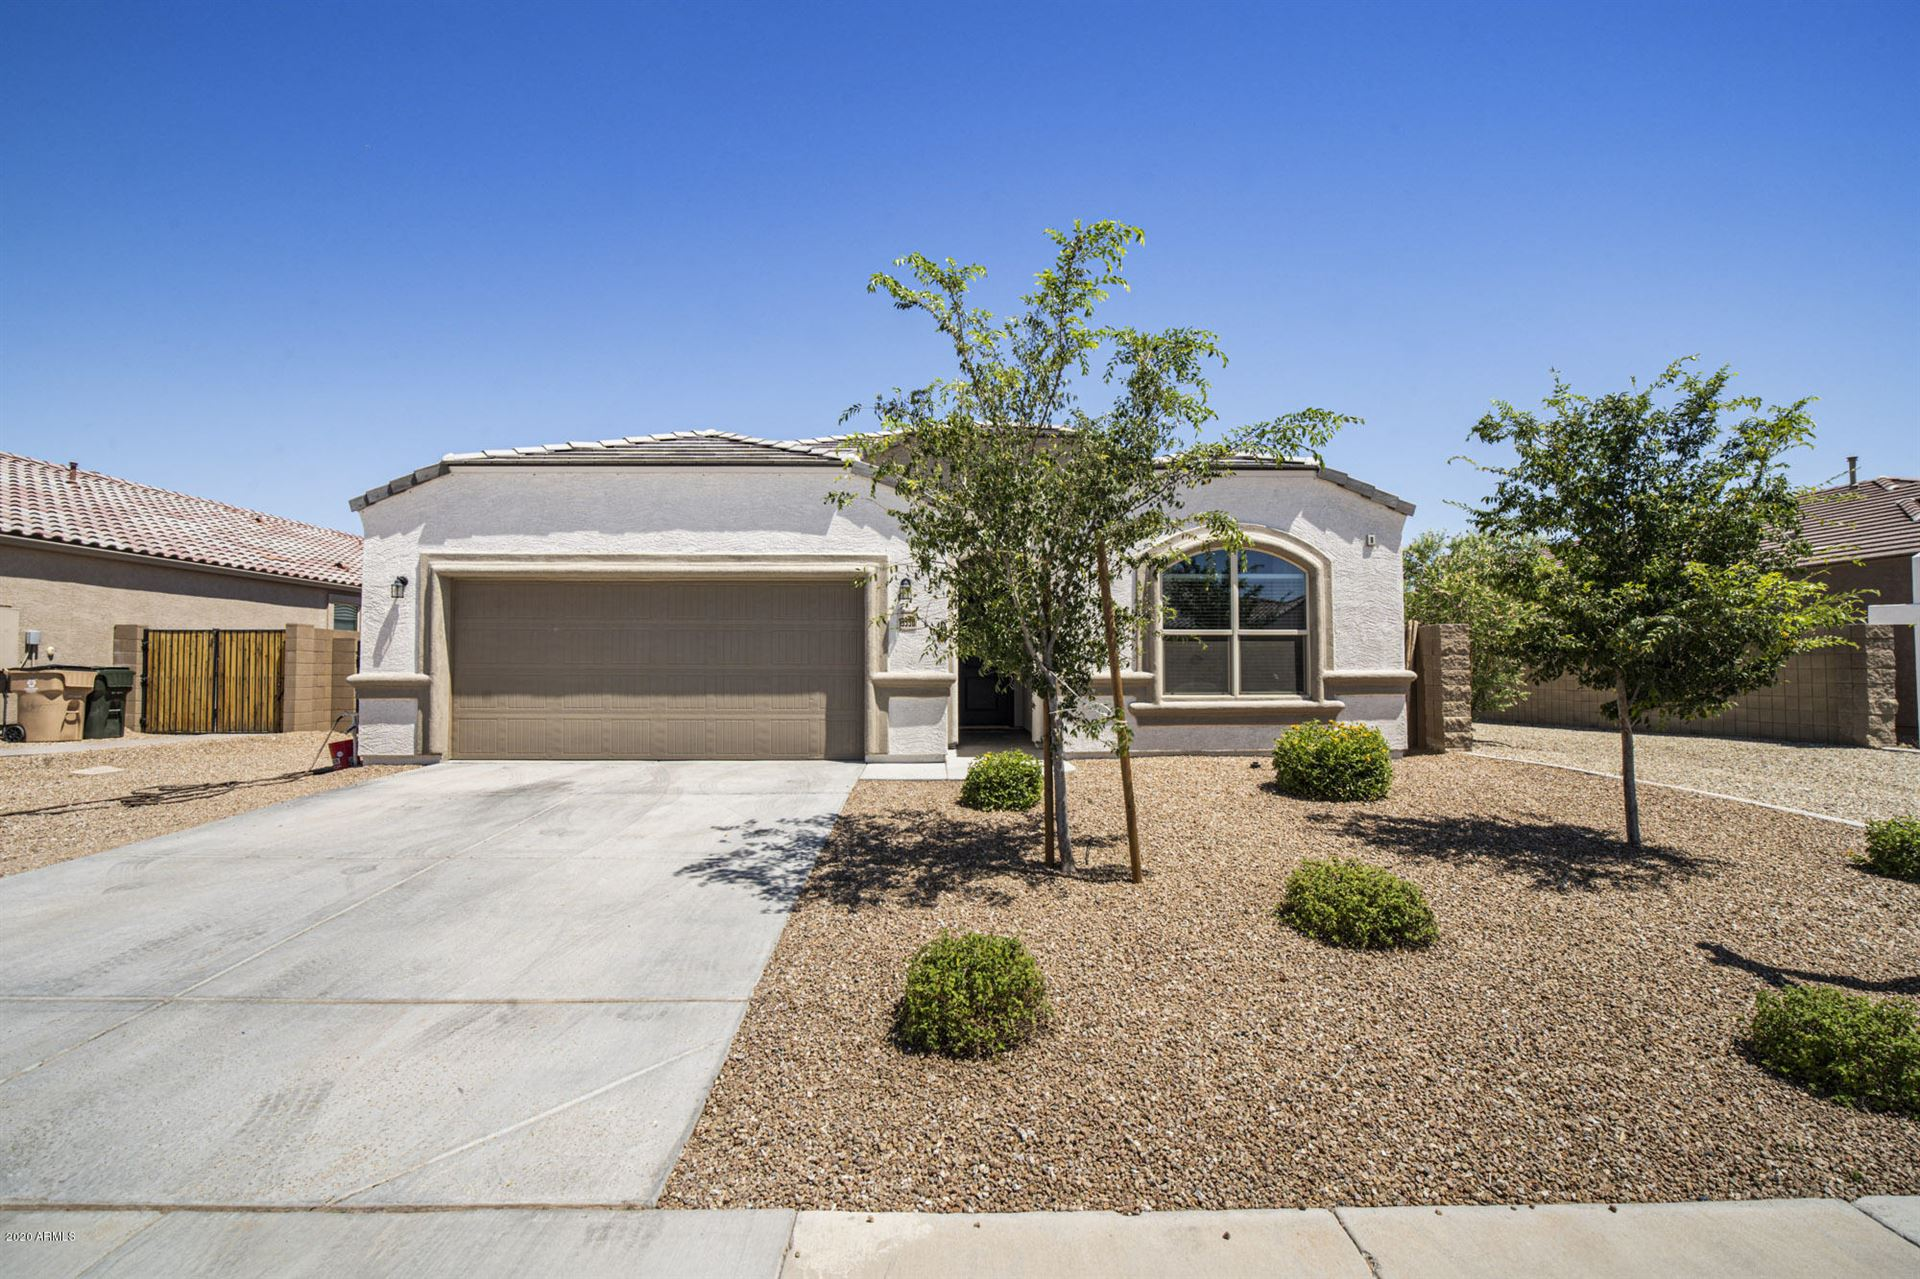 13550 W DESERT MOON Way, Peoria, AZ 85383 - MLS#: 6082652